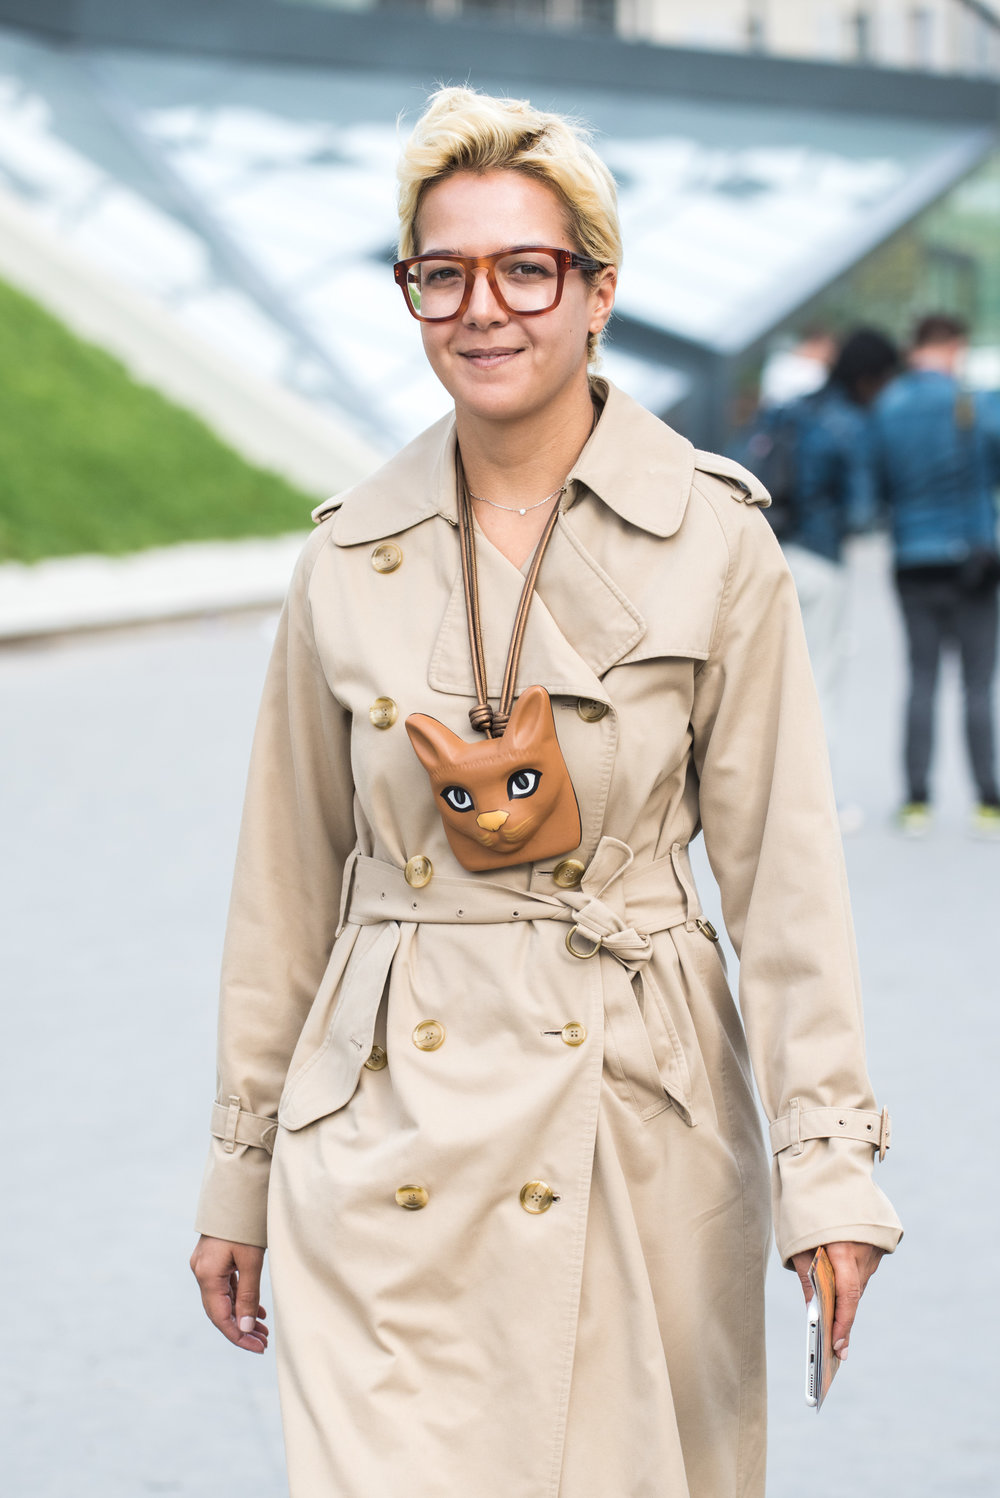 2016-09-29 - PARIS FASHION WEEK - day 3 - Miyaki Street style - 134 of 134 - _DSC9041 - 3 stars.jpg